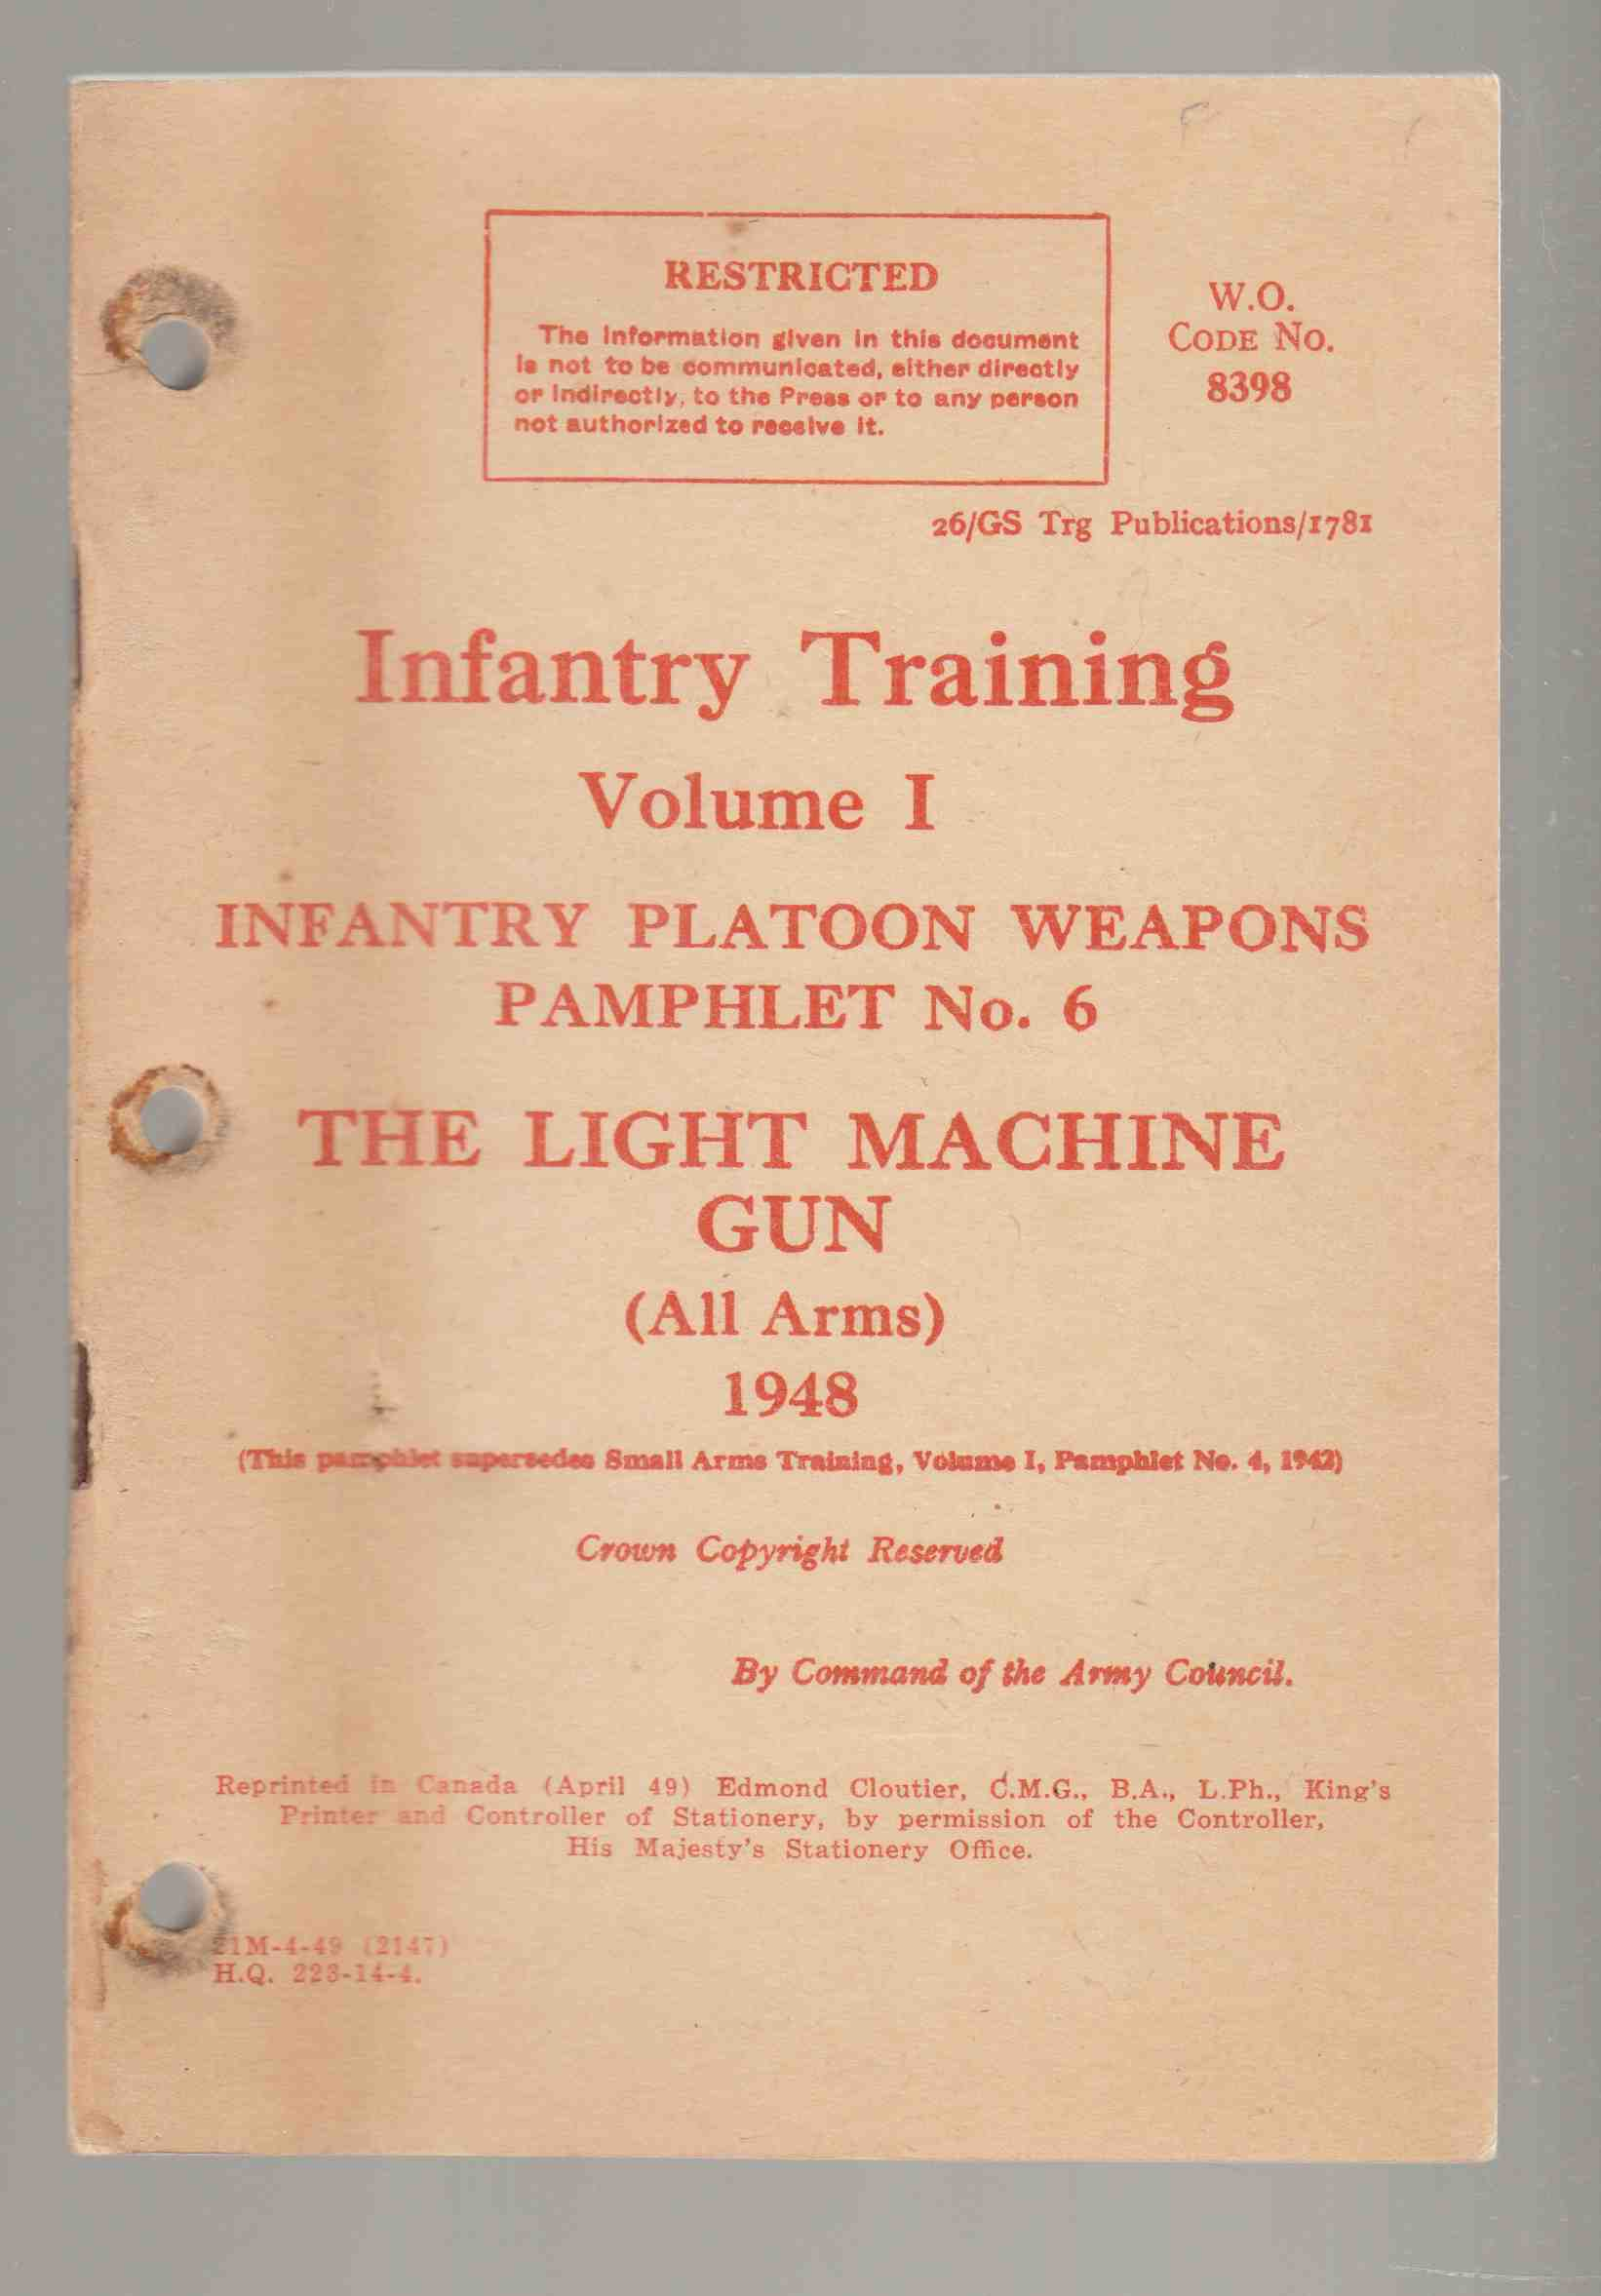 Image for Infantry Training Volume I Infantry Platoon Weapons Pamphlet No. 6 The Light Machine Gun (All Arms) 1948